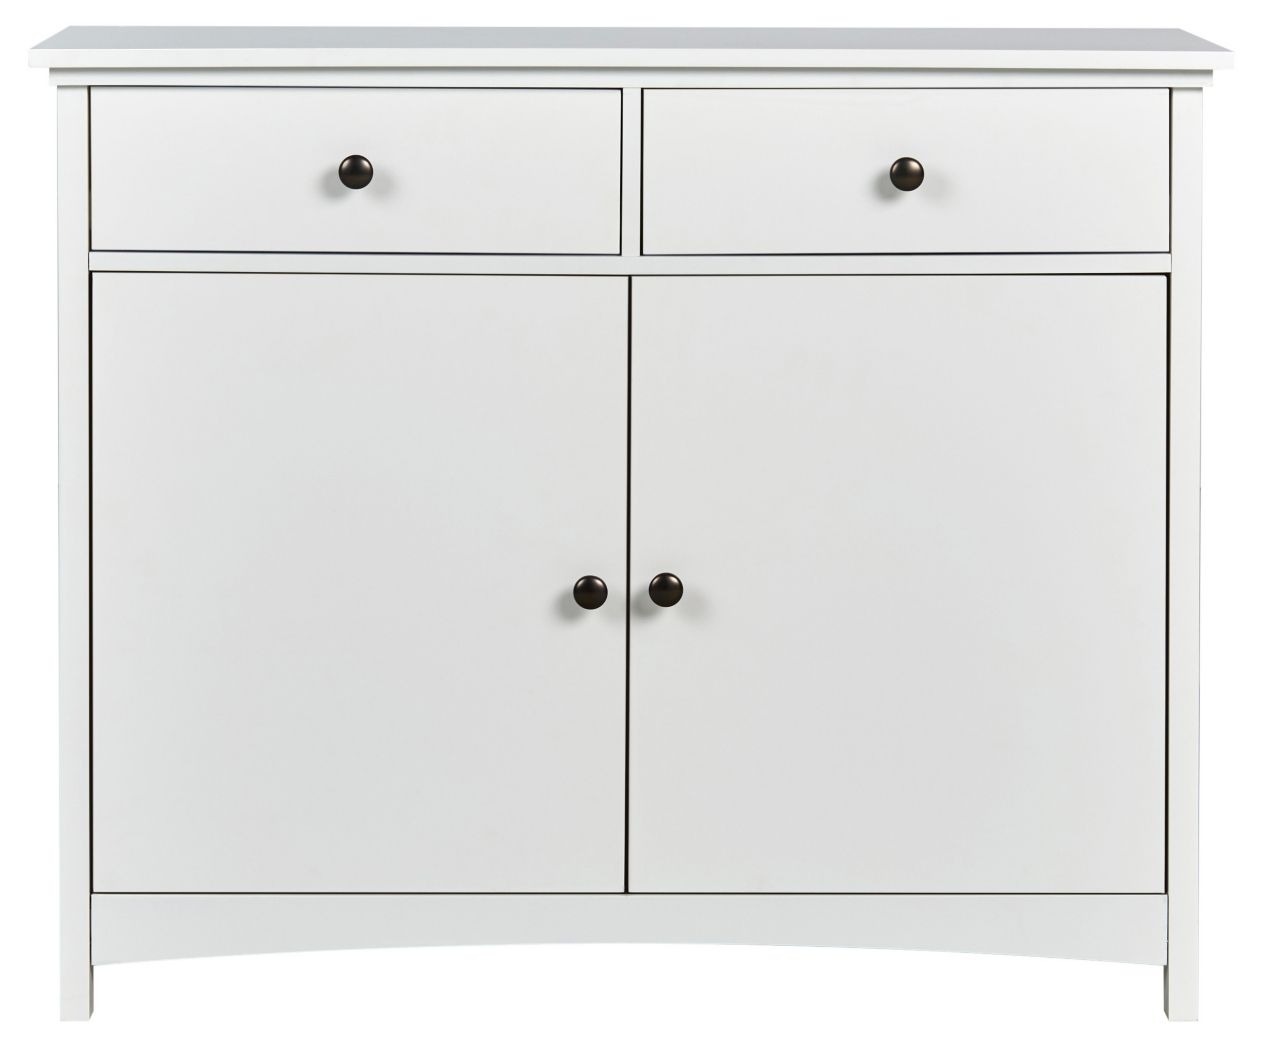 Modern Large 2 Door 2 Drawer Sideboard White Cupboard Tv Cabinet Pertaining To Current 2 Drawer Sideboards (#10 of 20)